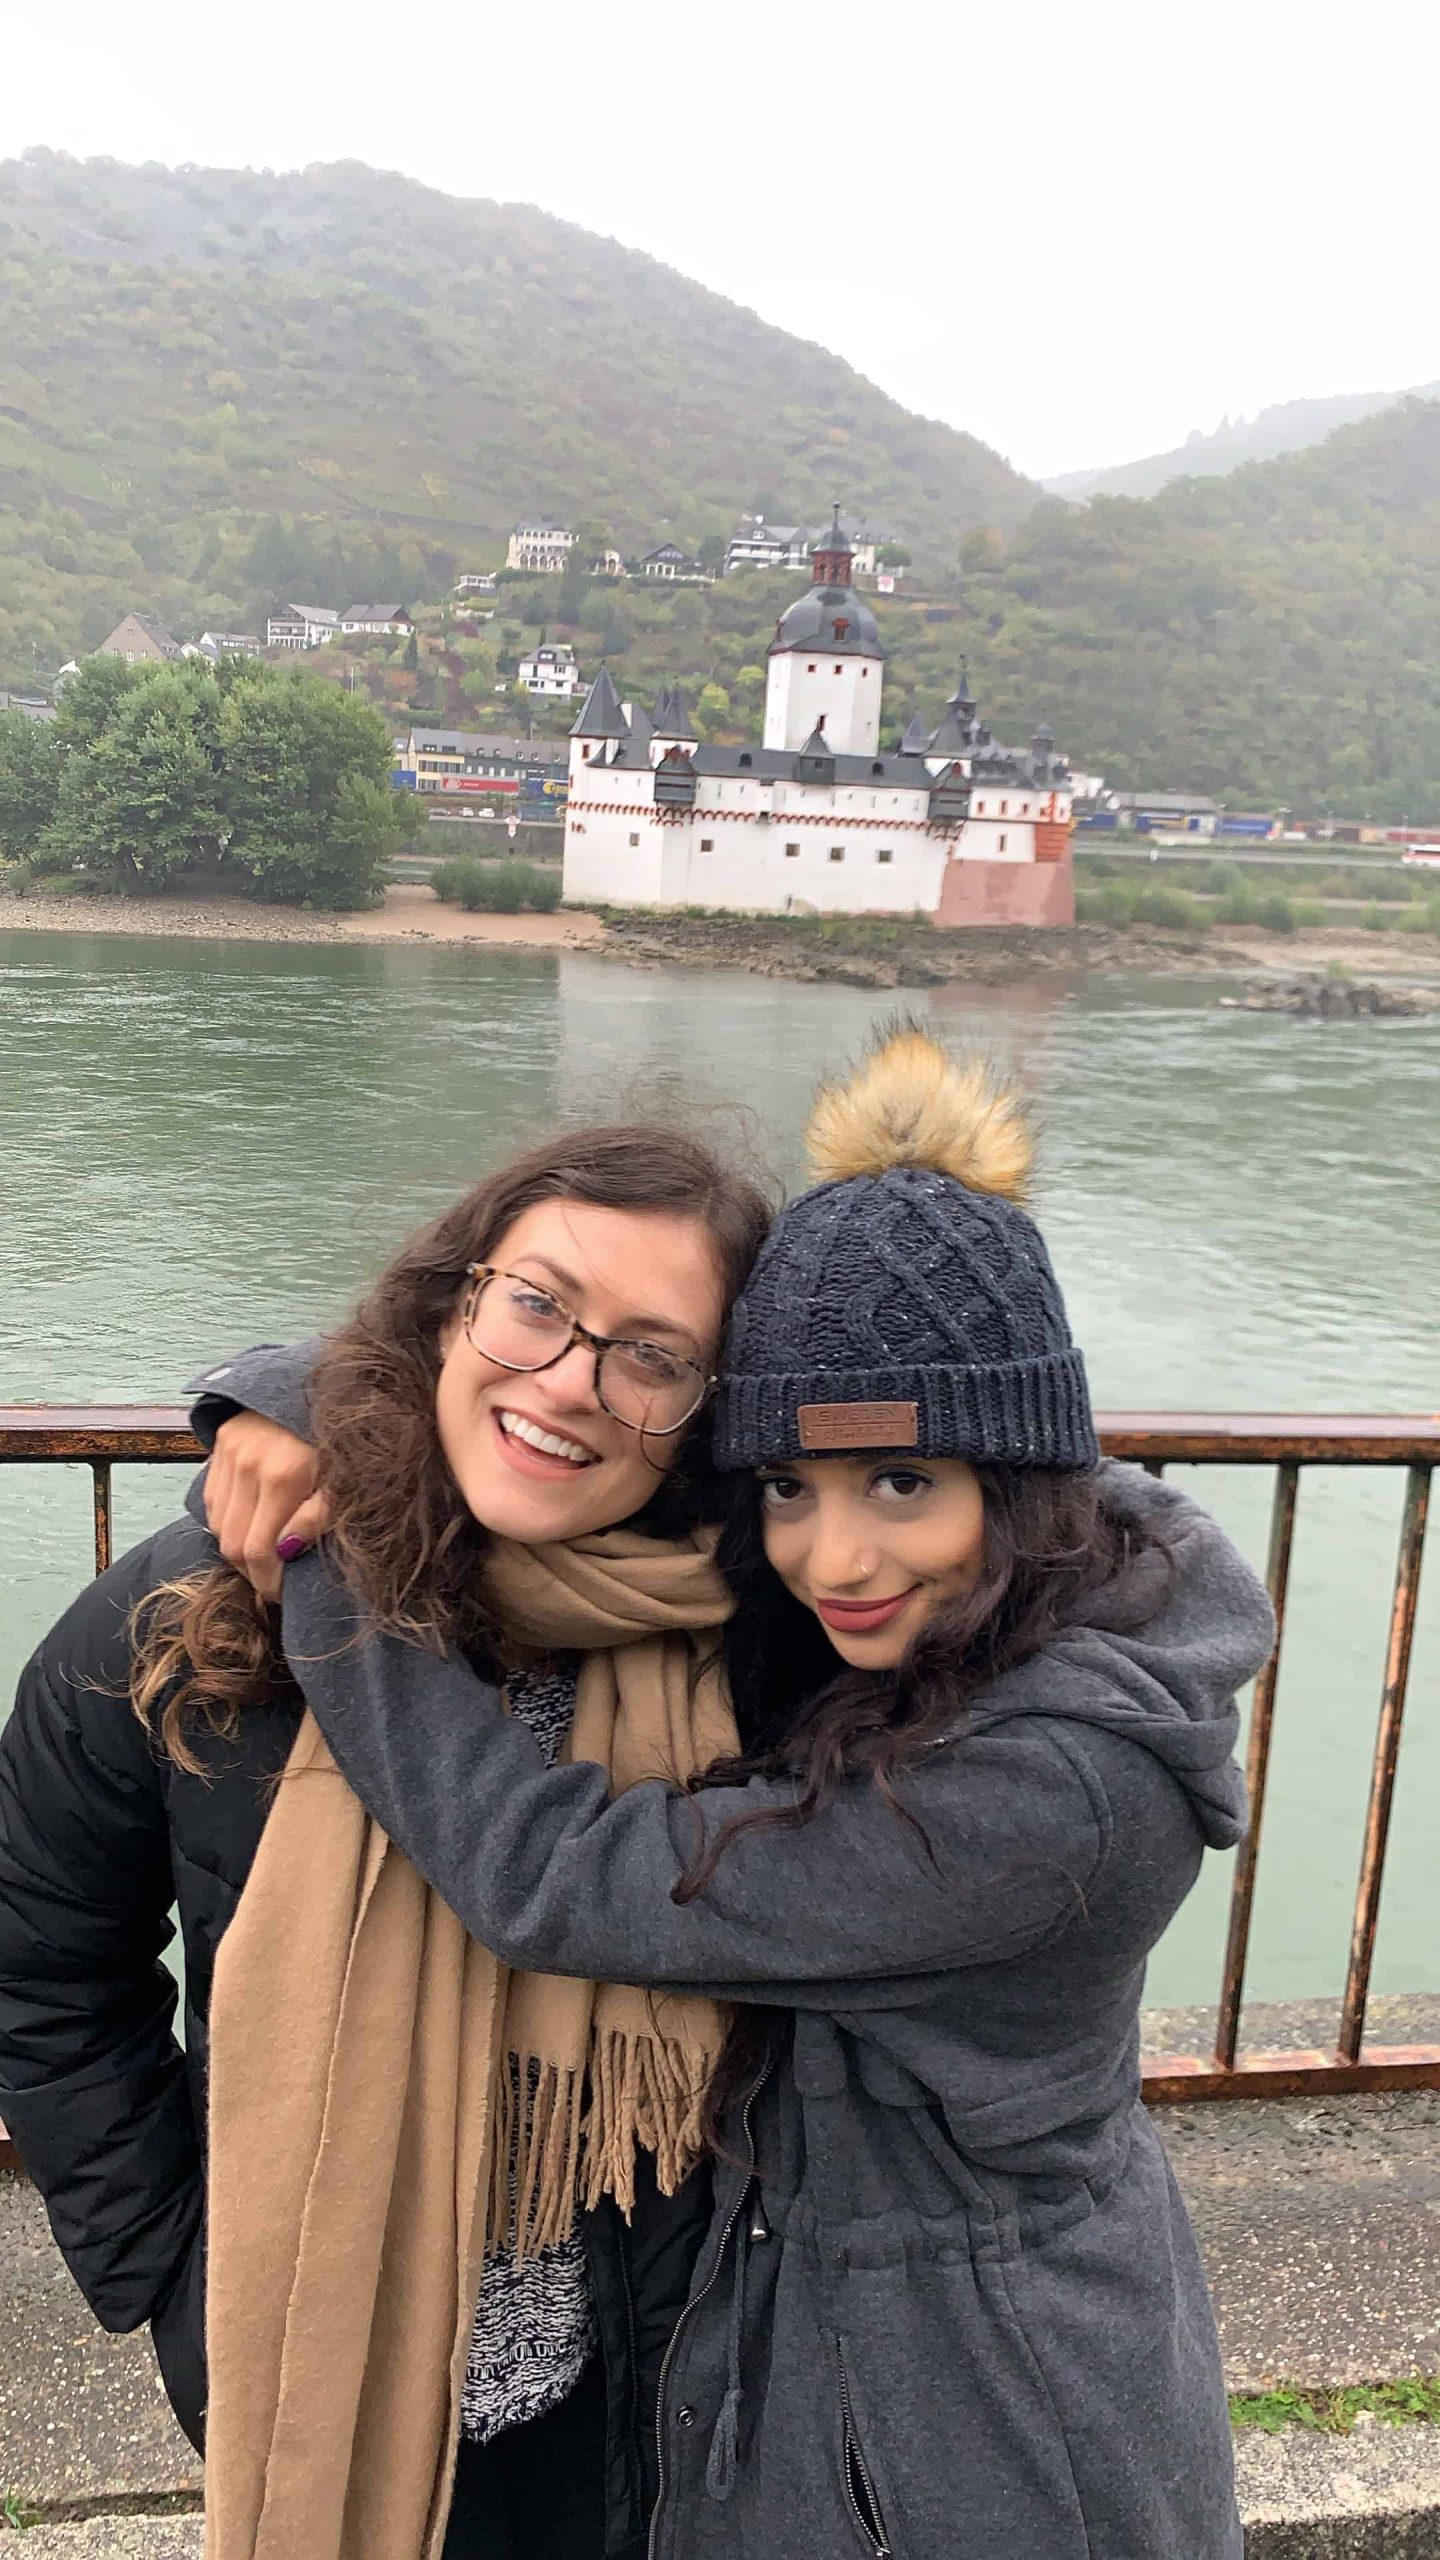 Kelsey and her friend hugging with the Mosel River and a castle in the background in Germany